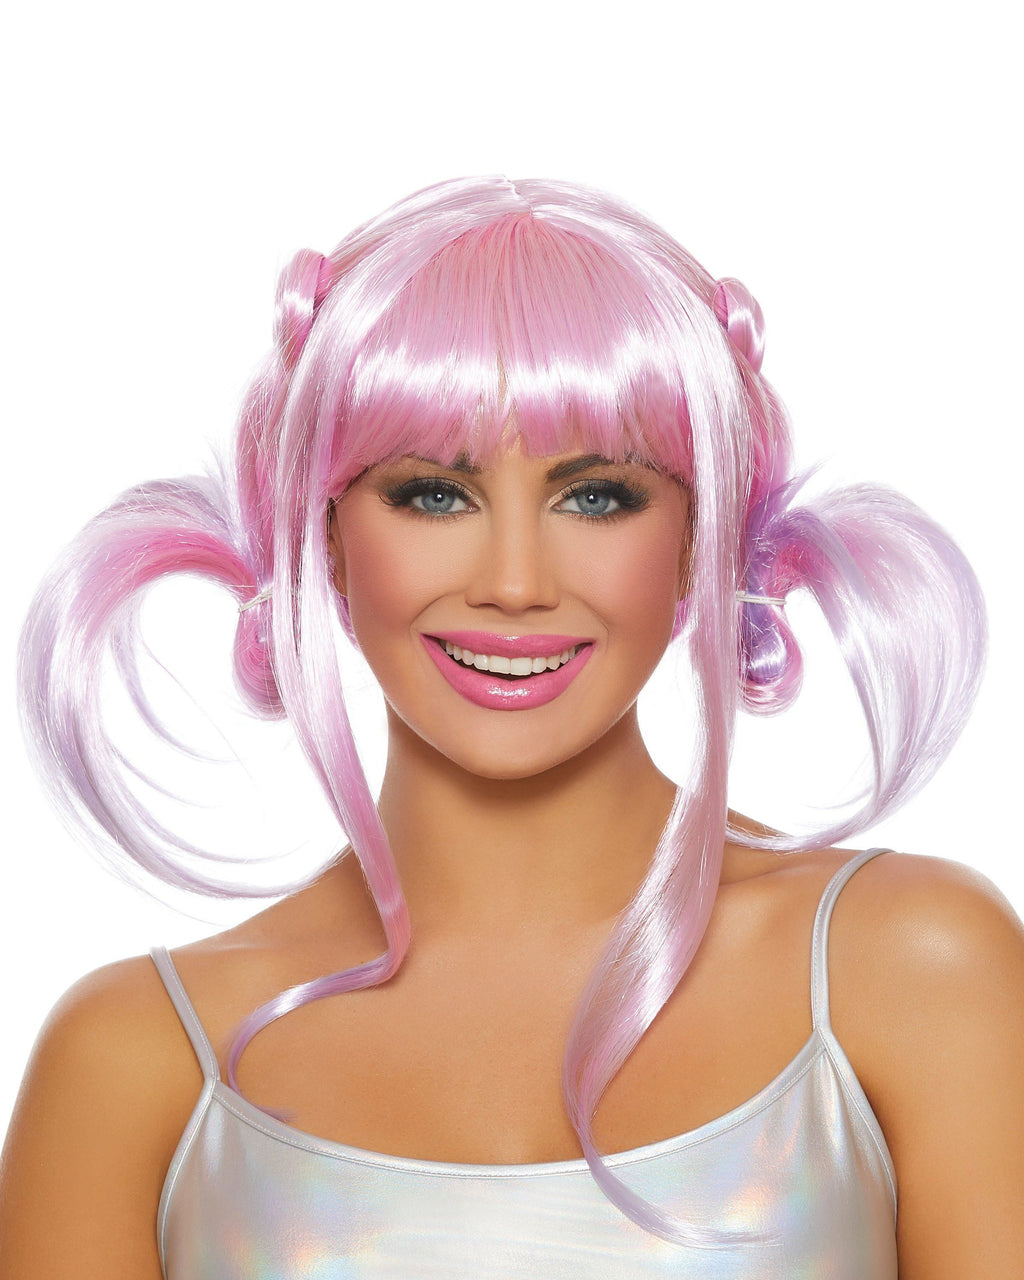 Anime Ombré Wig with Pigtails Wig Dreamgirl Costume